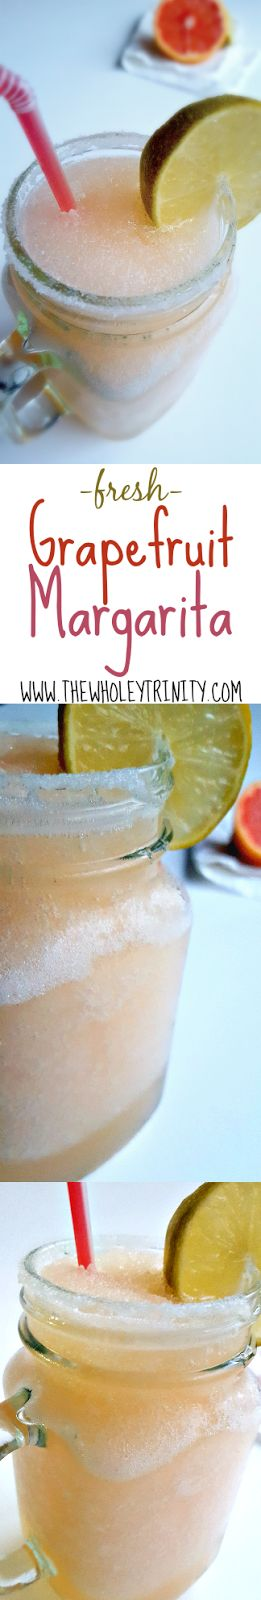 Fresh Grapefruit Margarita Recipe. Just 3 simple ingredients to make this all-natural cocktail drink! Happy Margarita Monday!